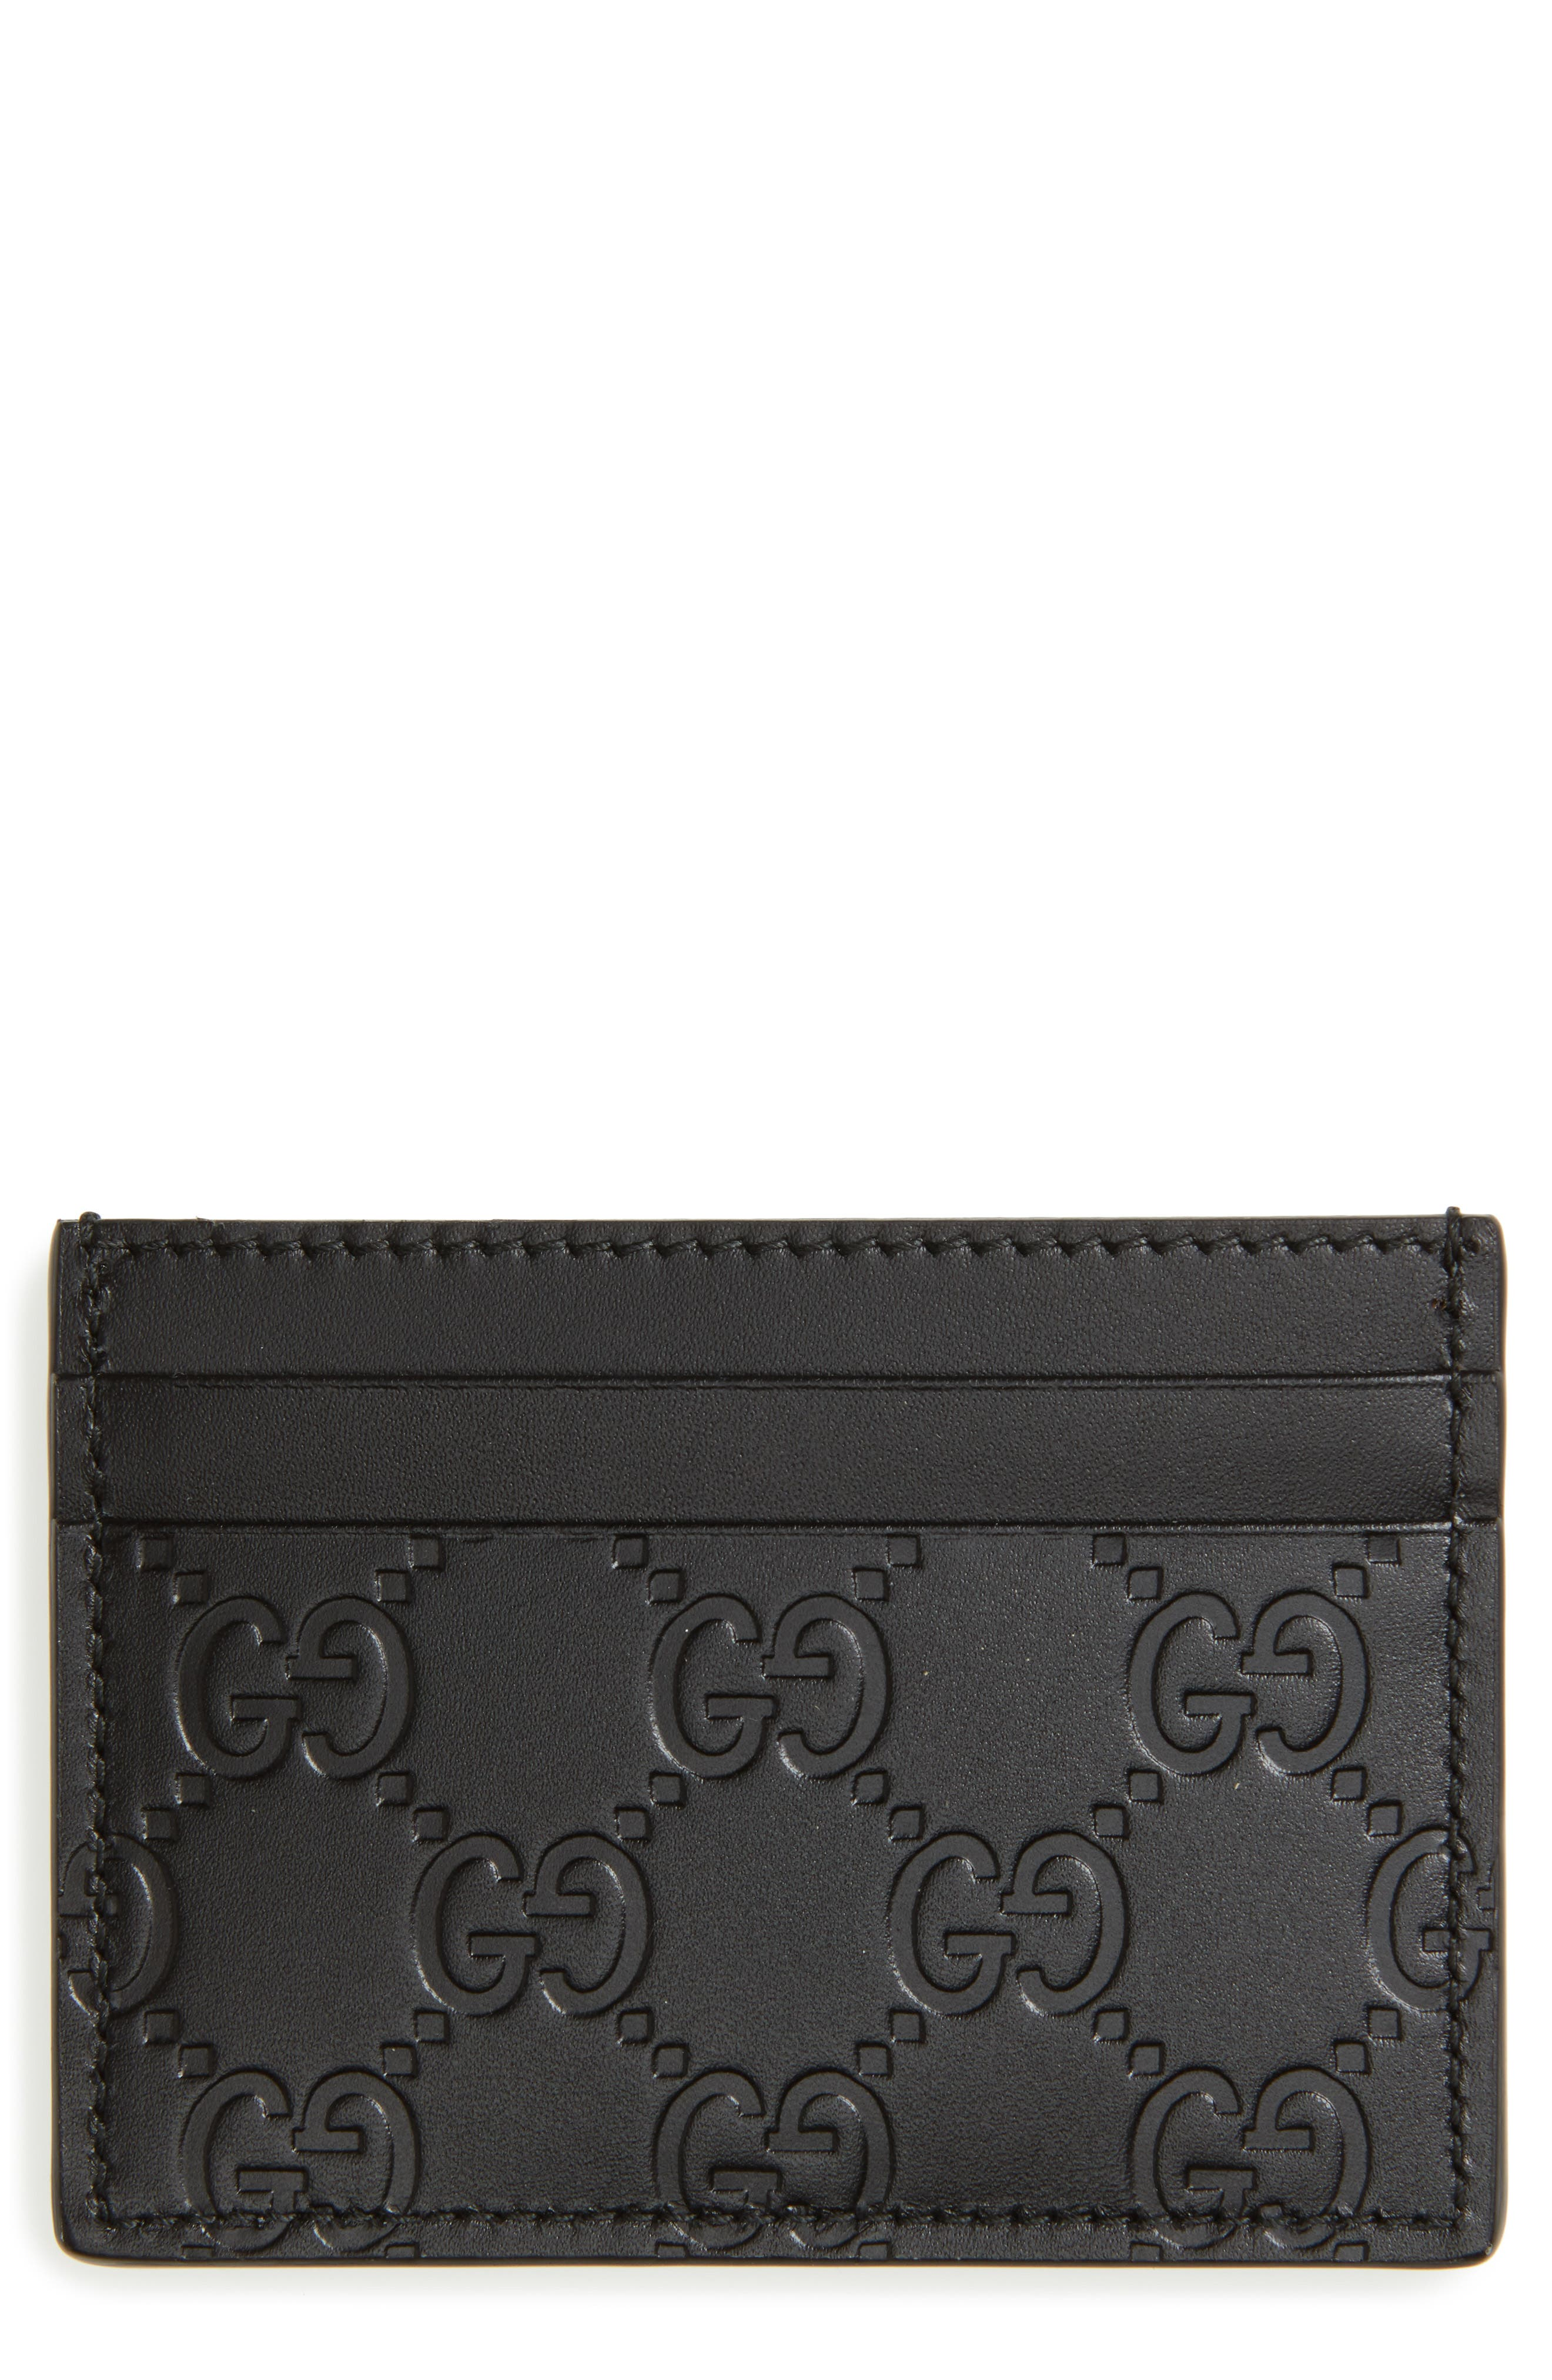 Main Image - Gucci Leather Card Case